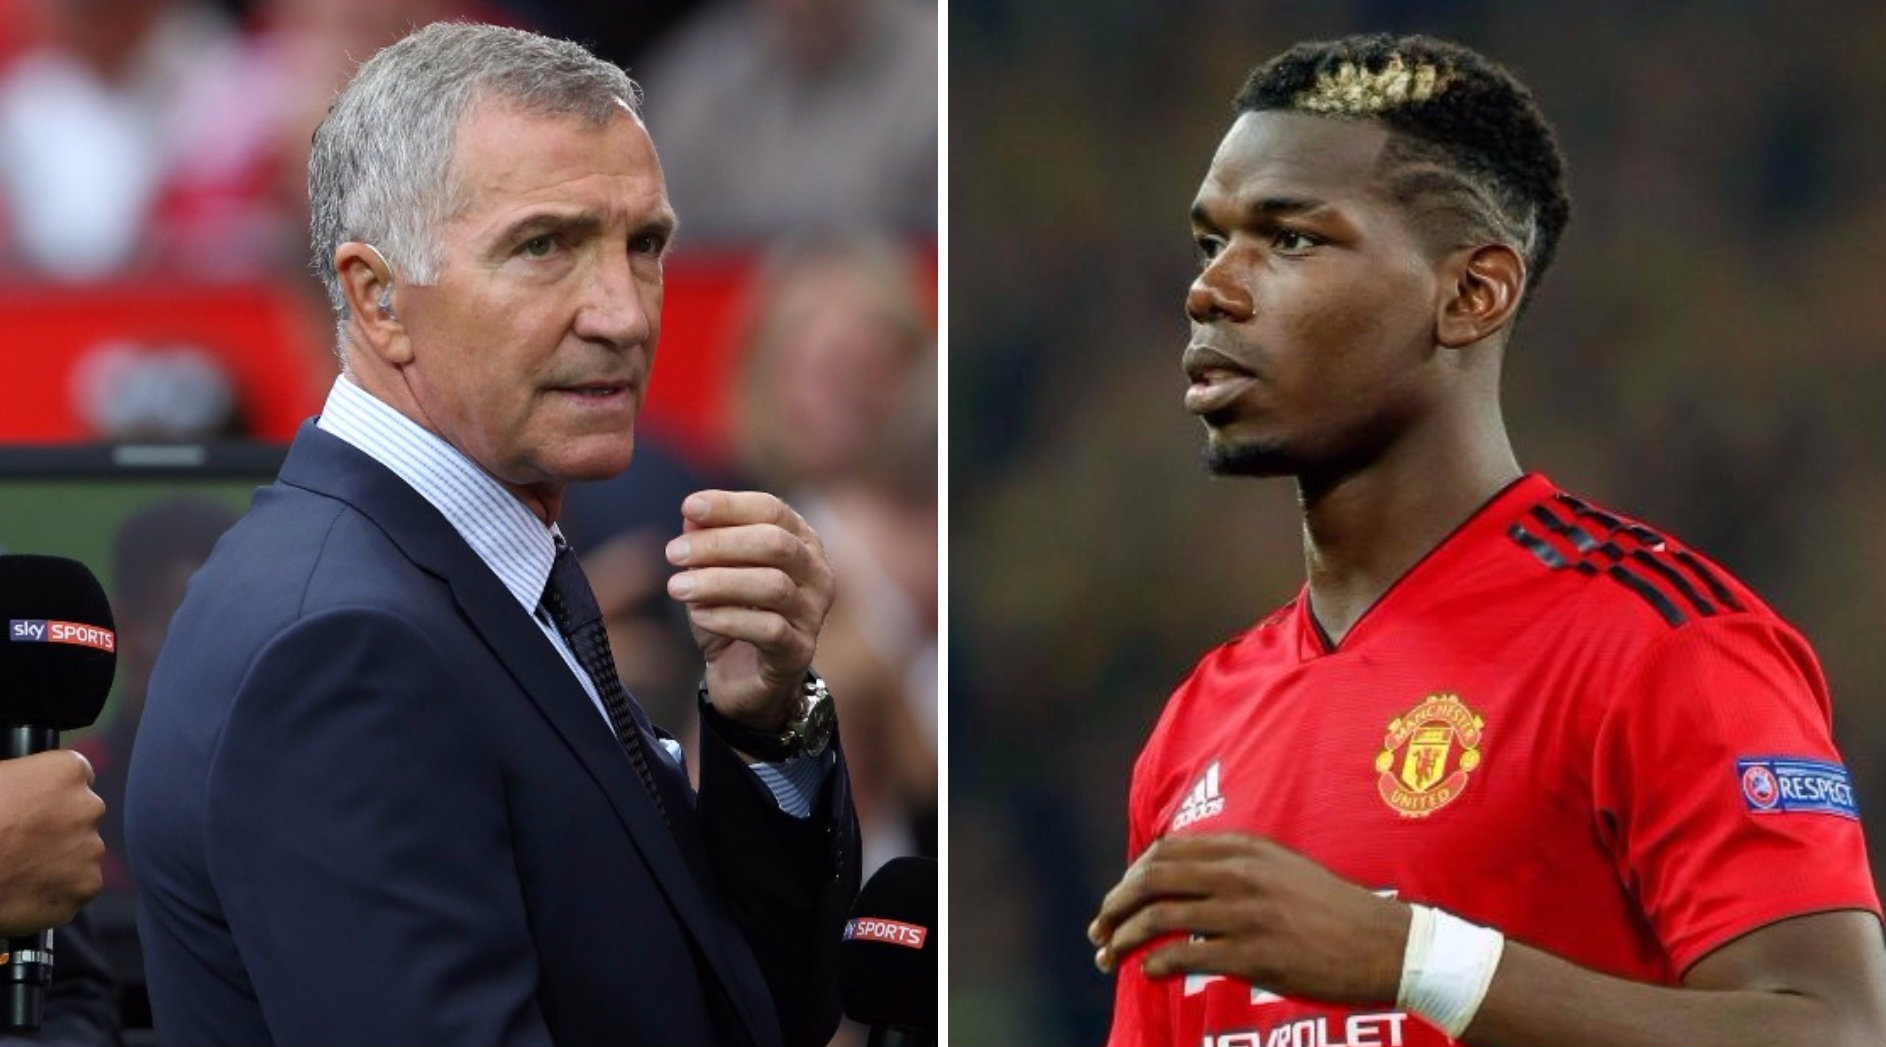 Graeme Souness goes full Graeme Souness comparing Paul Pogba and James Milner